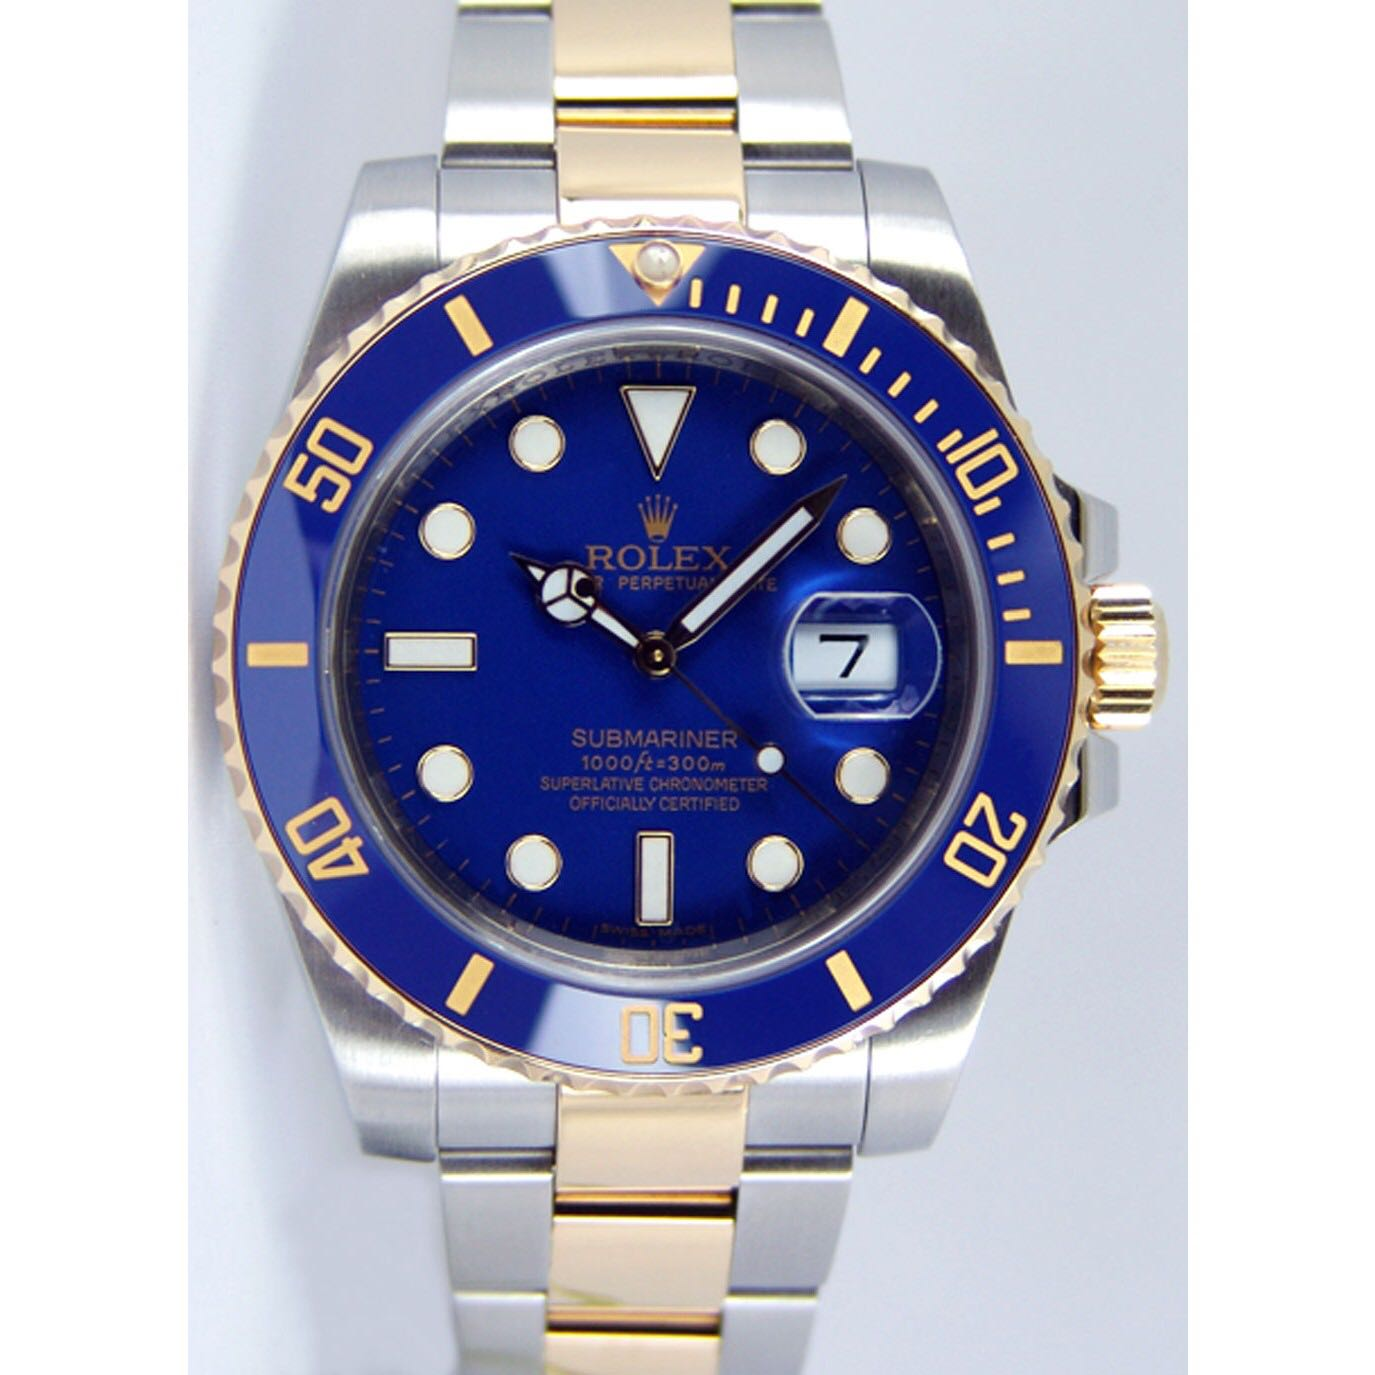 Rolex Submariner Date, Blue Face, Steel and Gold Ref 116613